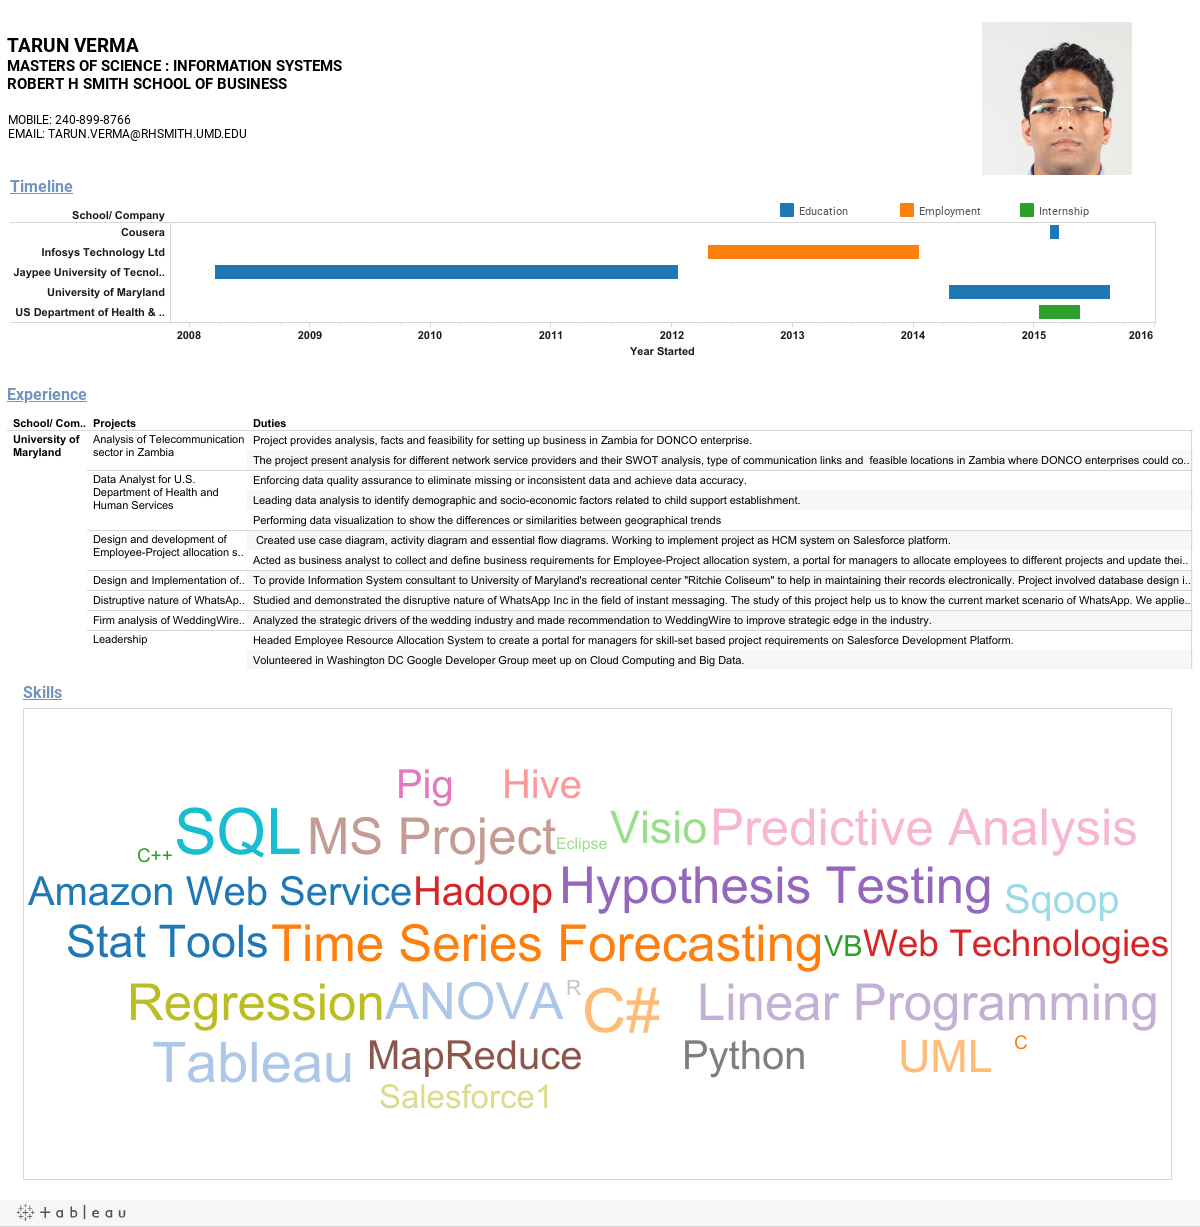 My Visualizations work: My Resume on Tableau